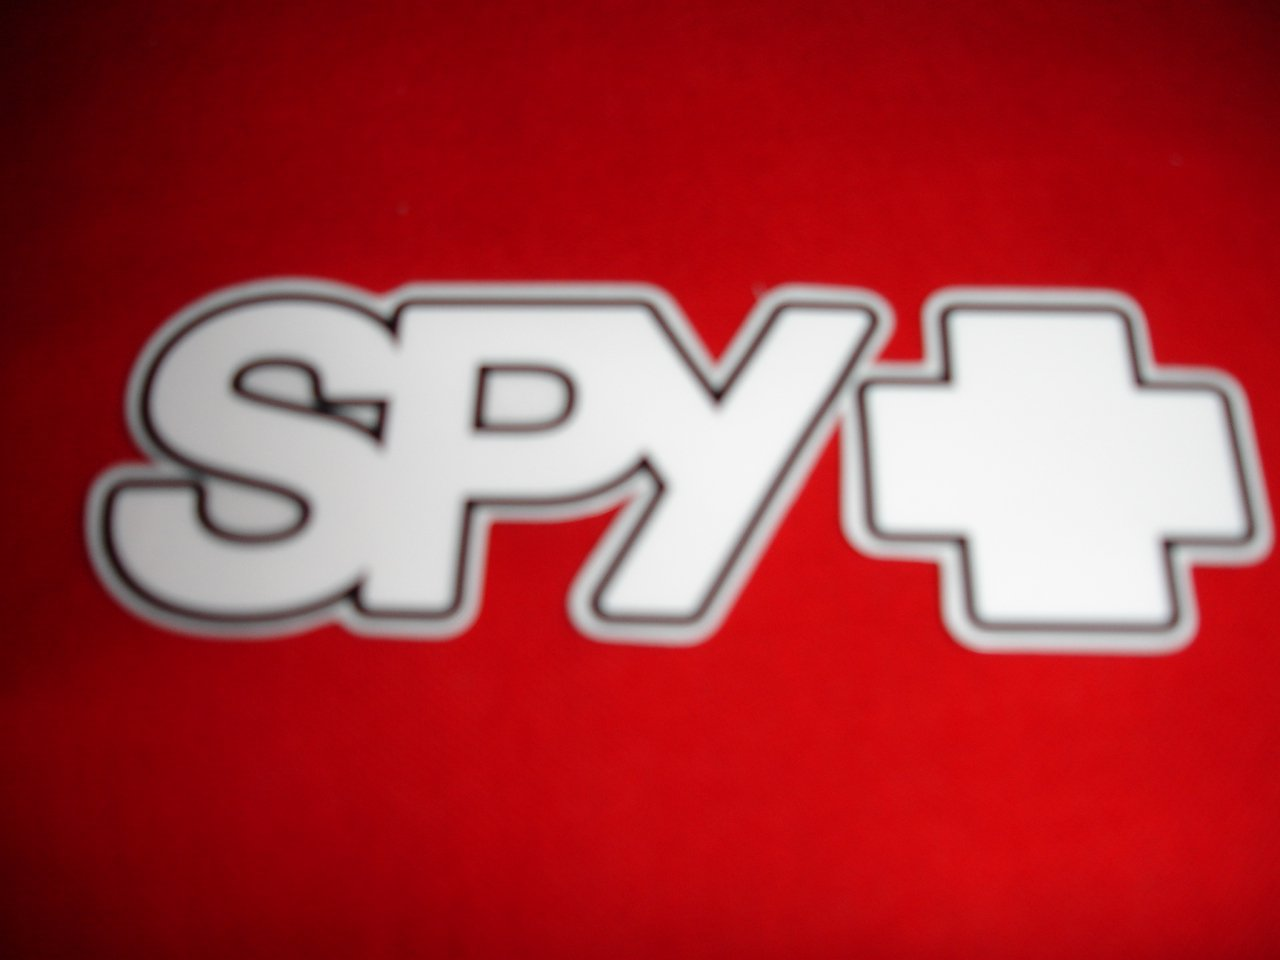 Spy sticker